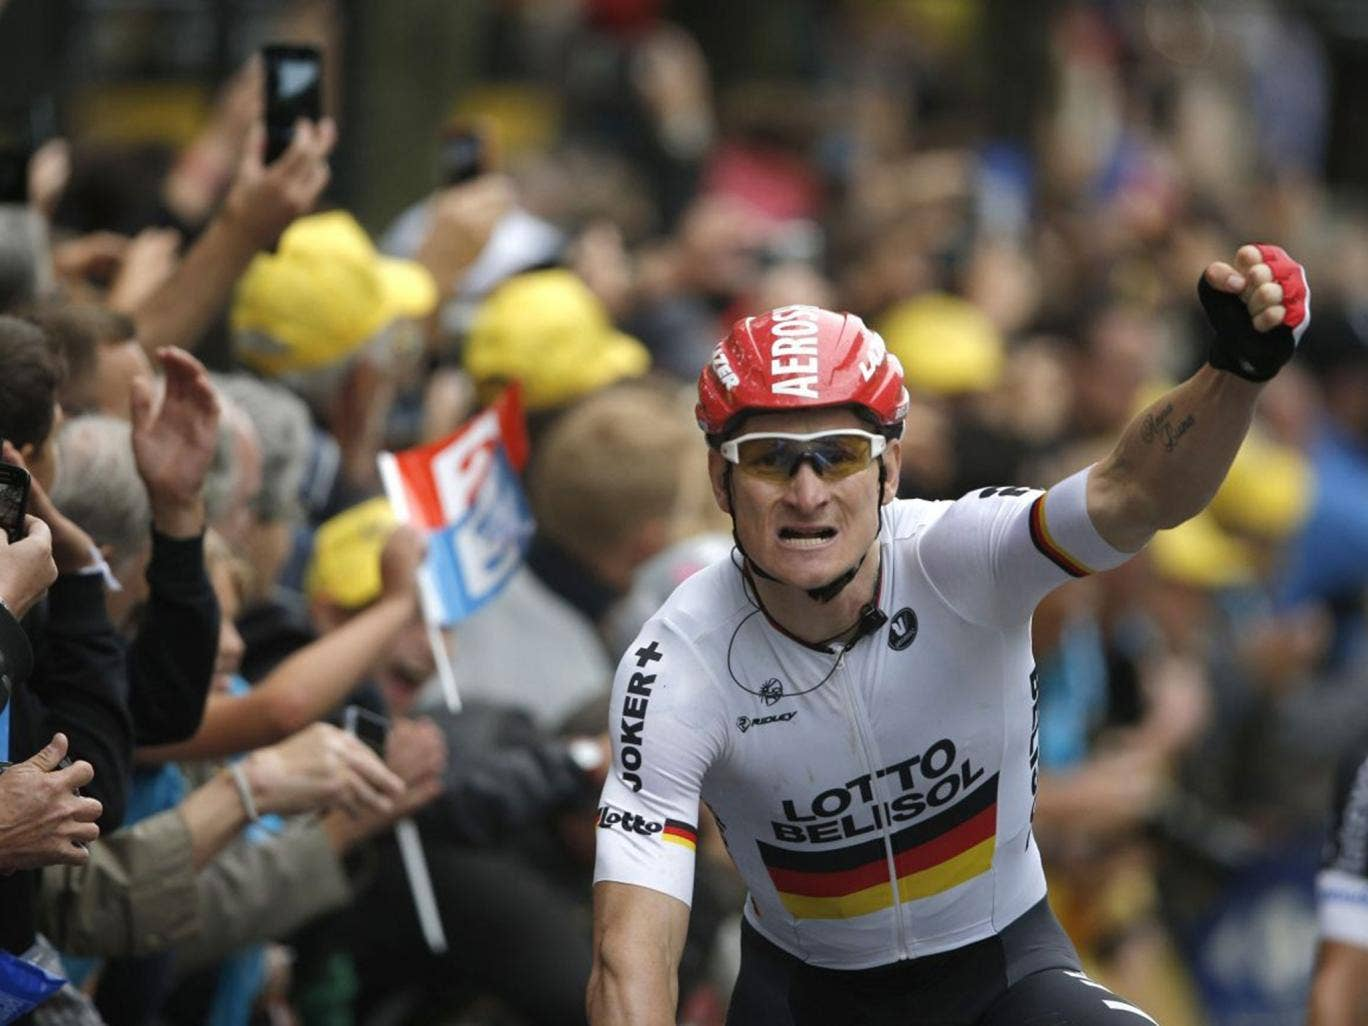 Germany's Andre Greipel crosses the finish line to win the sixth stage of the Tour de France cycling race over 194 kilometers (120.5 miles) with start in Arras and finish in Reims, France